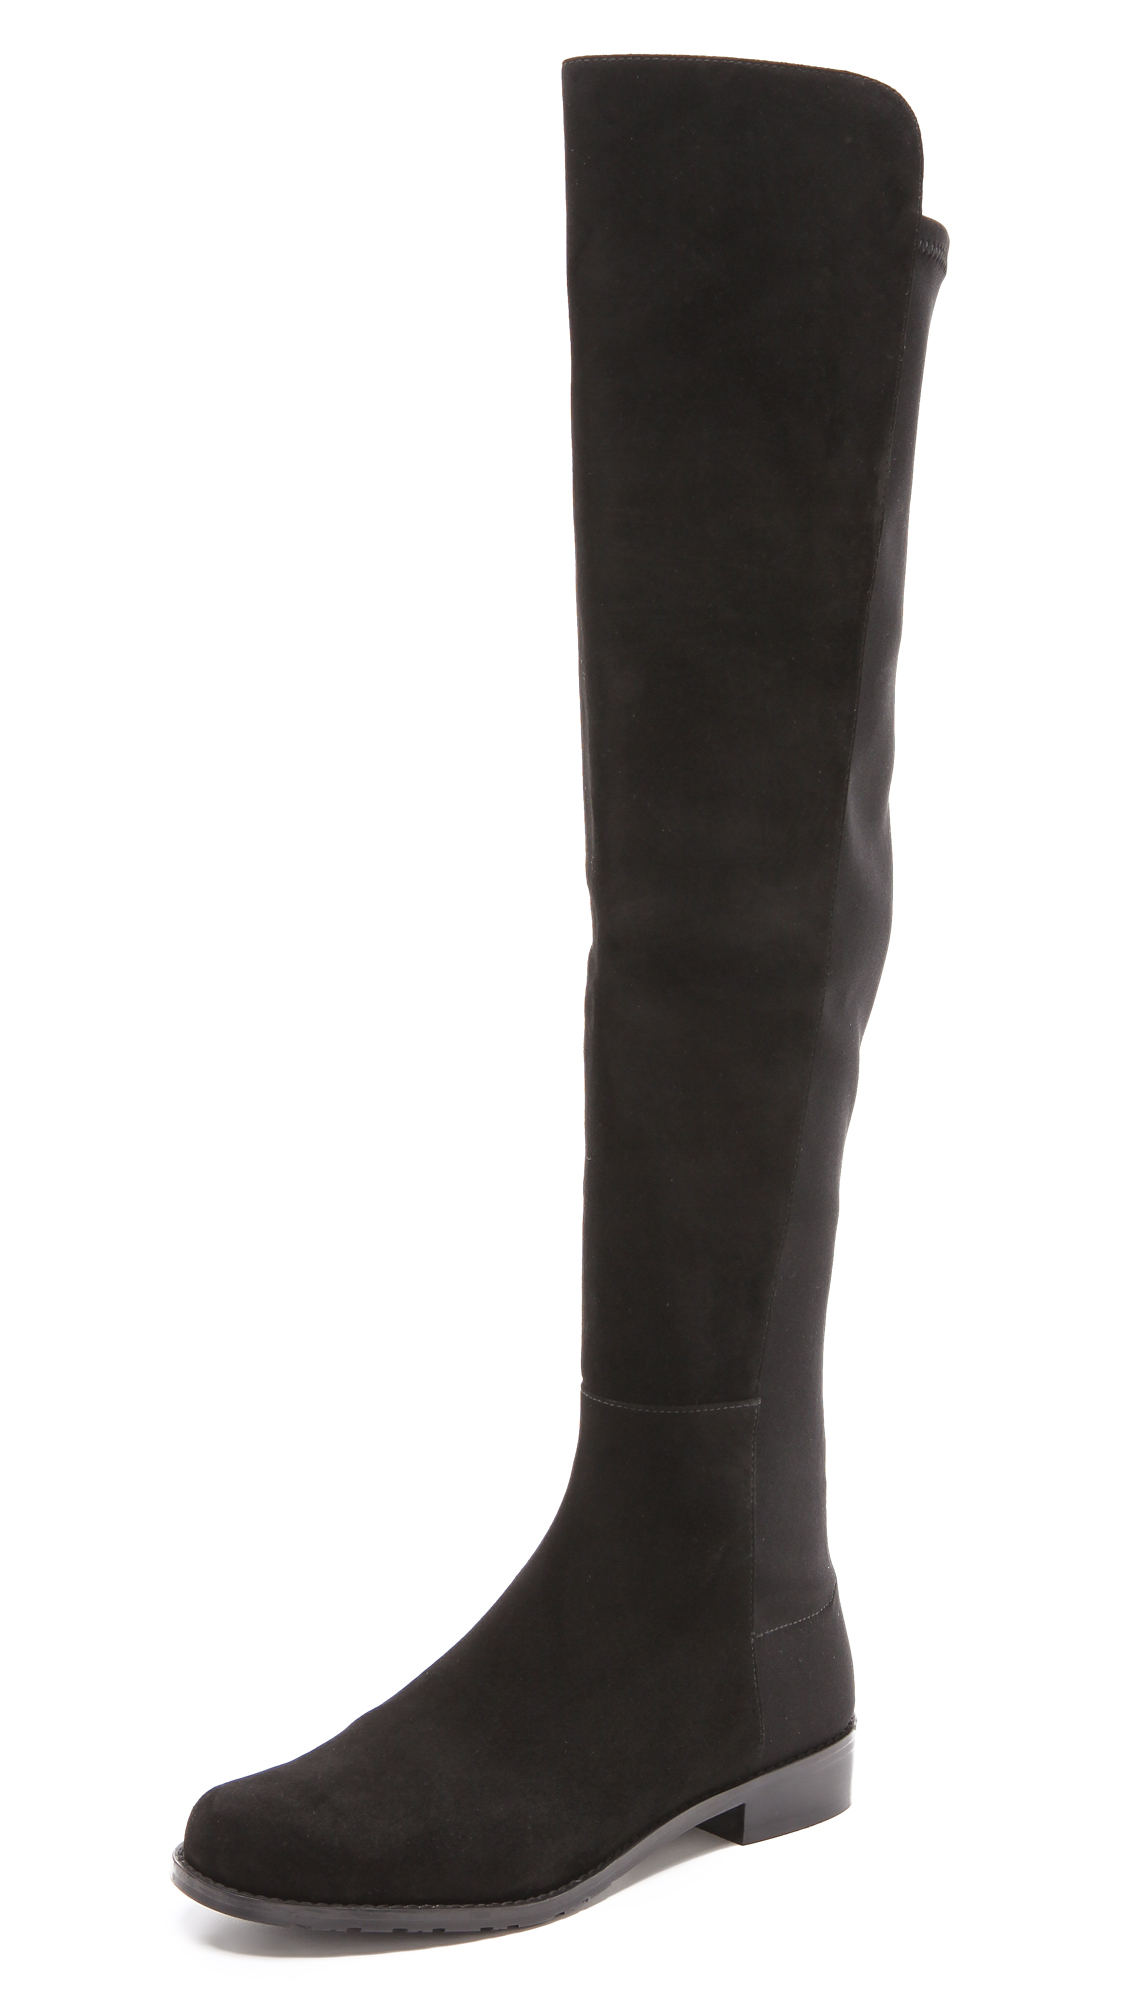 5050 Stretch Suede Boots in Black